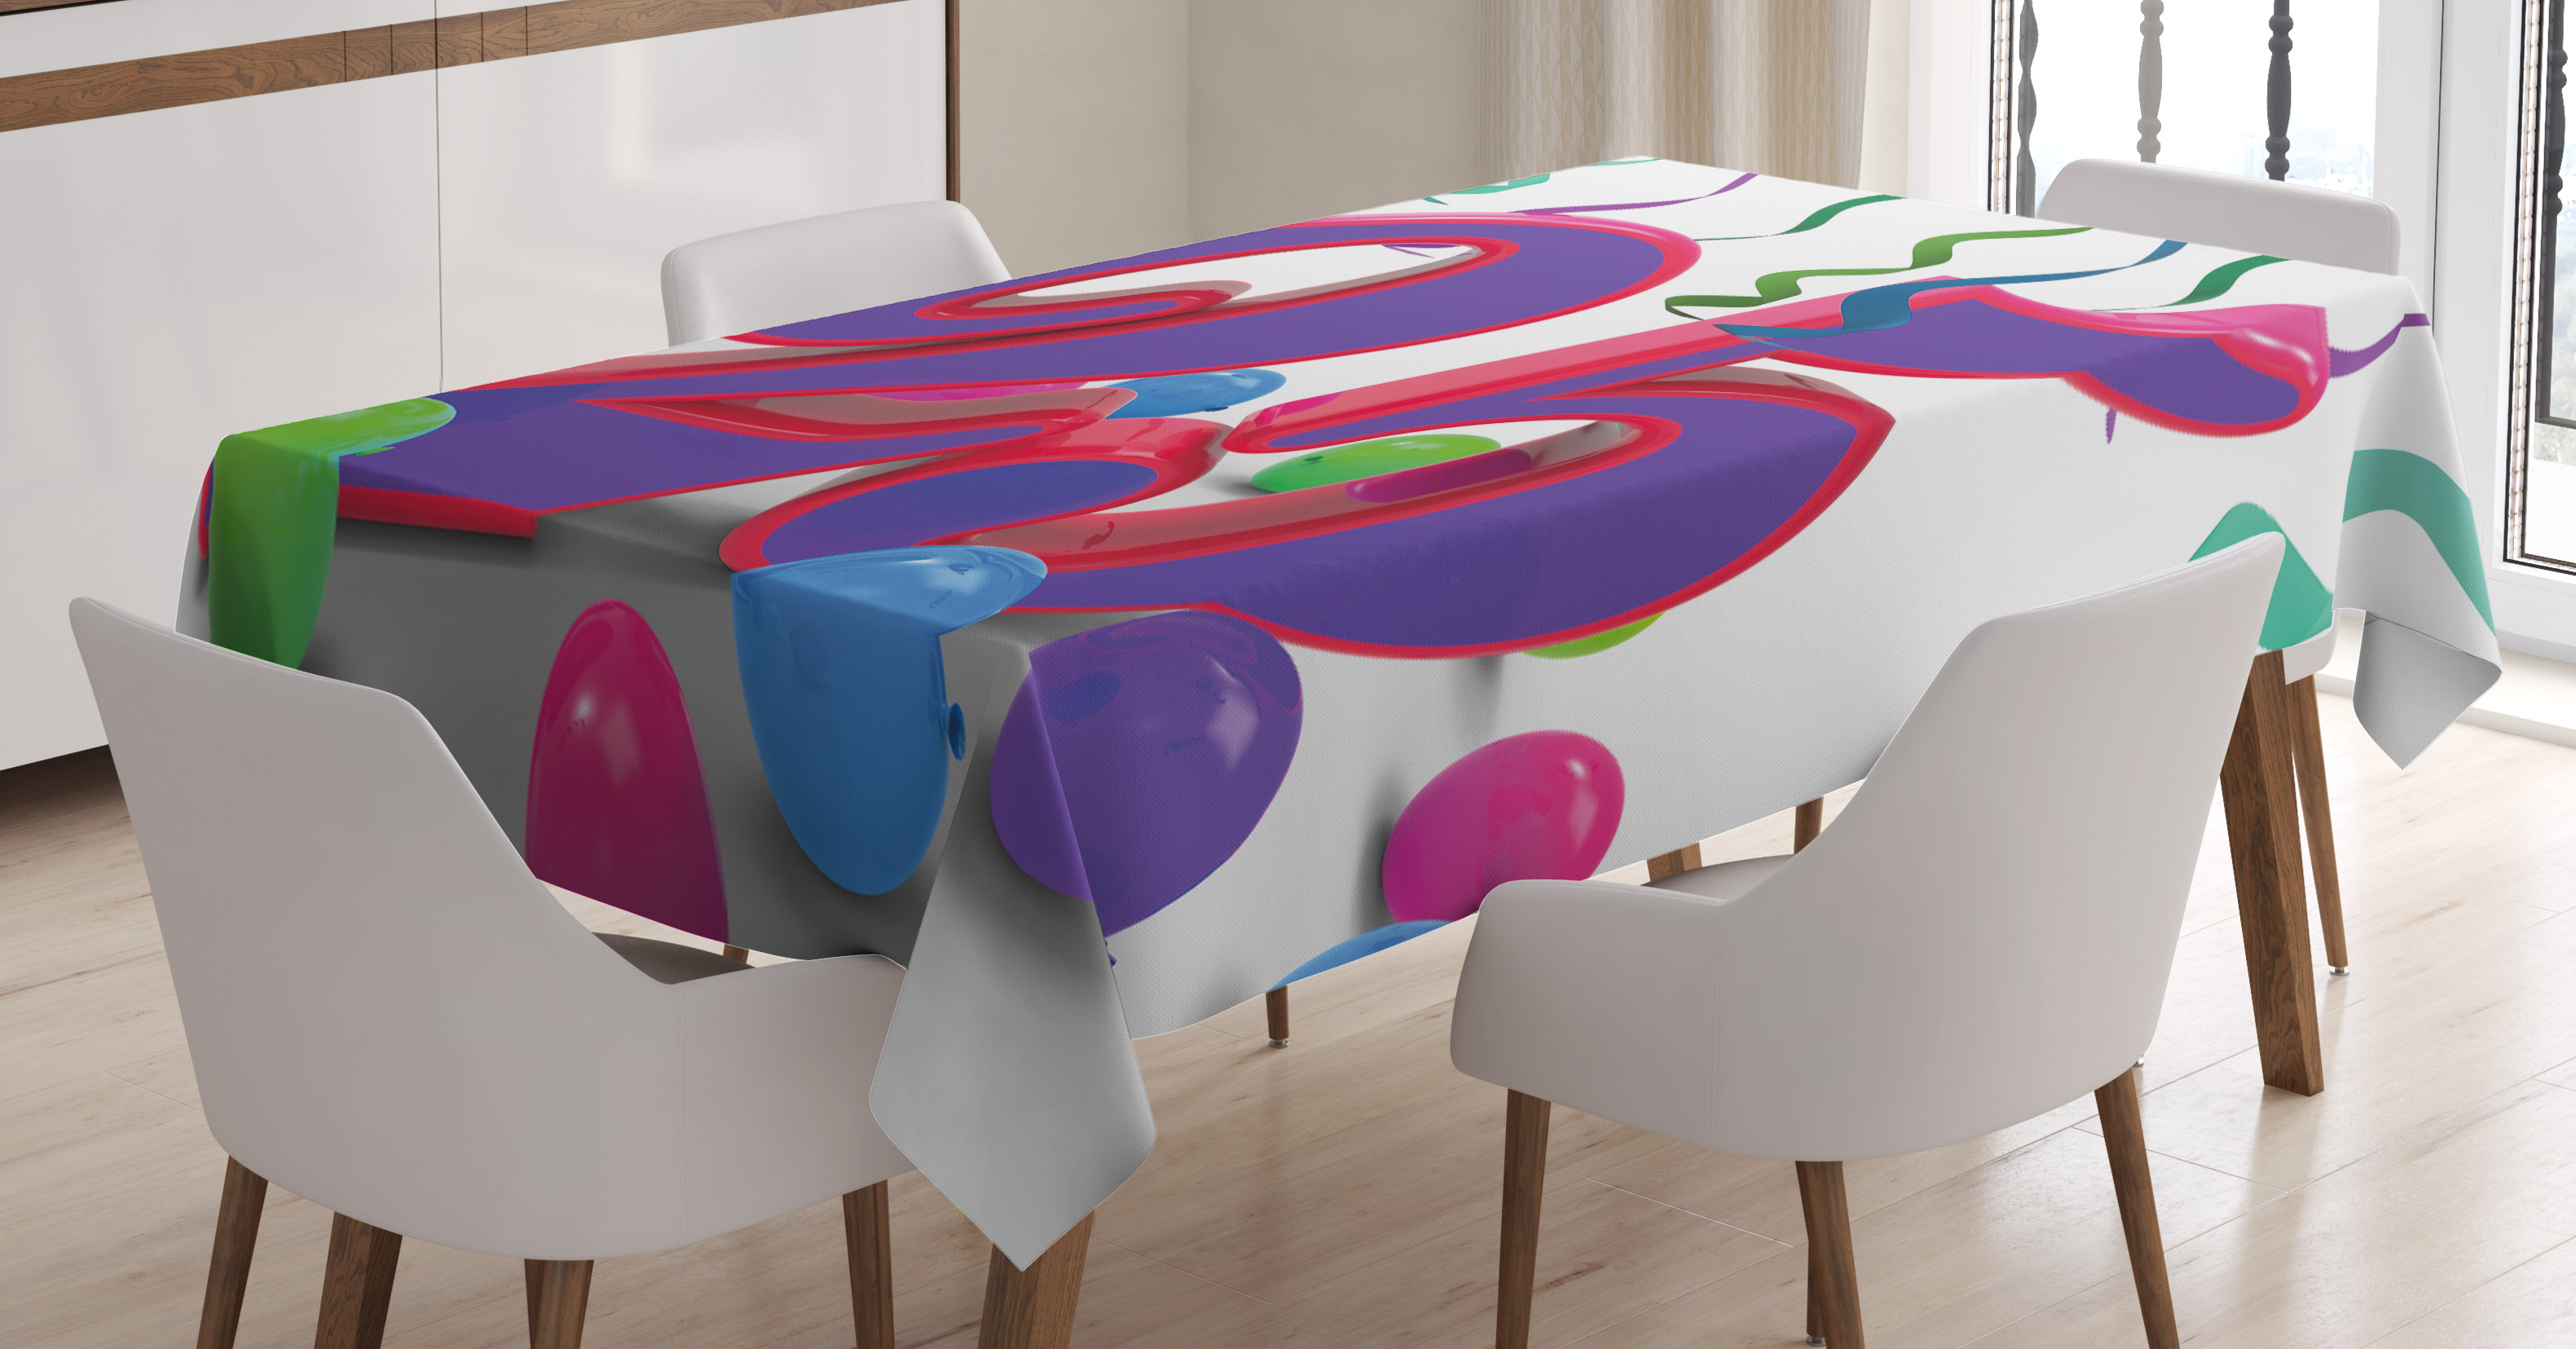 25th Birthday Decorations Tablecloth Party Set Up Colorful Ribbons And Balloons On The Ground Rectangular Table Cover For Dining Room Kitchen